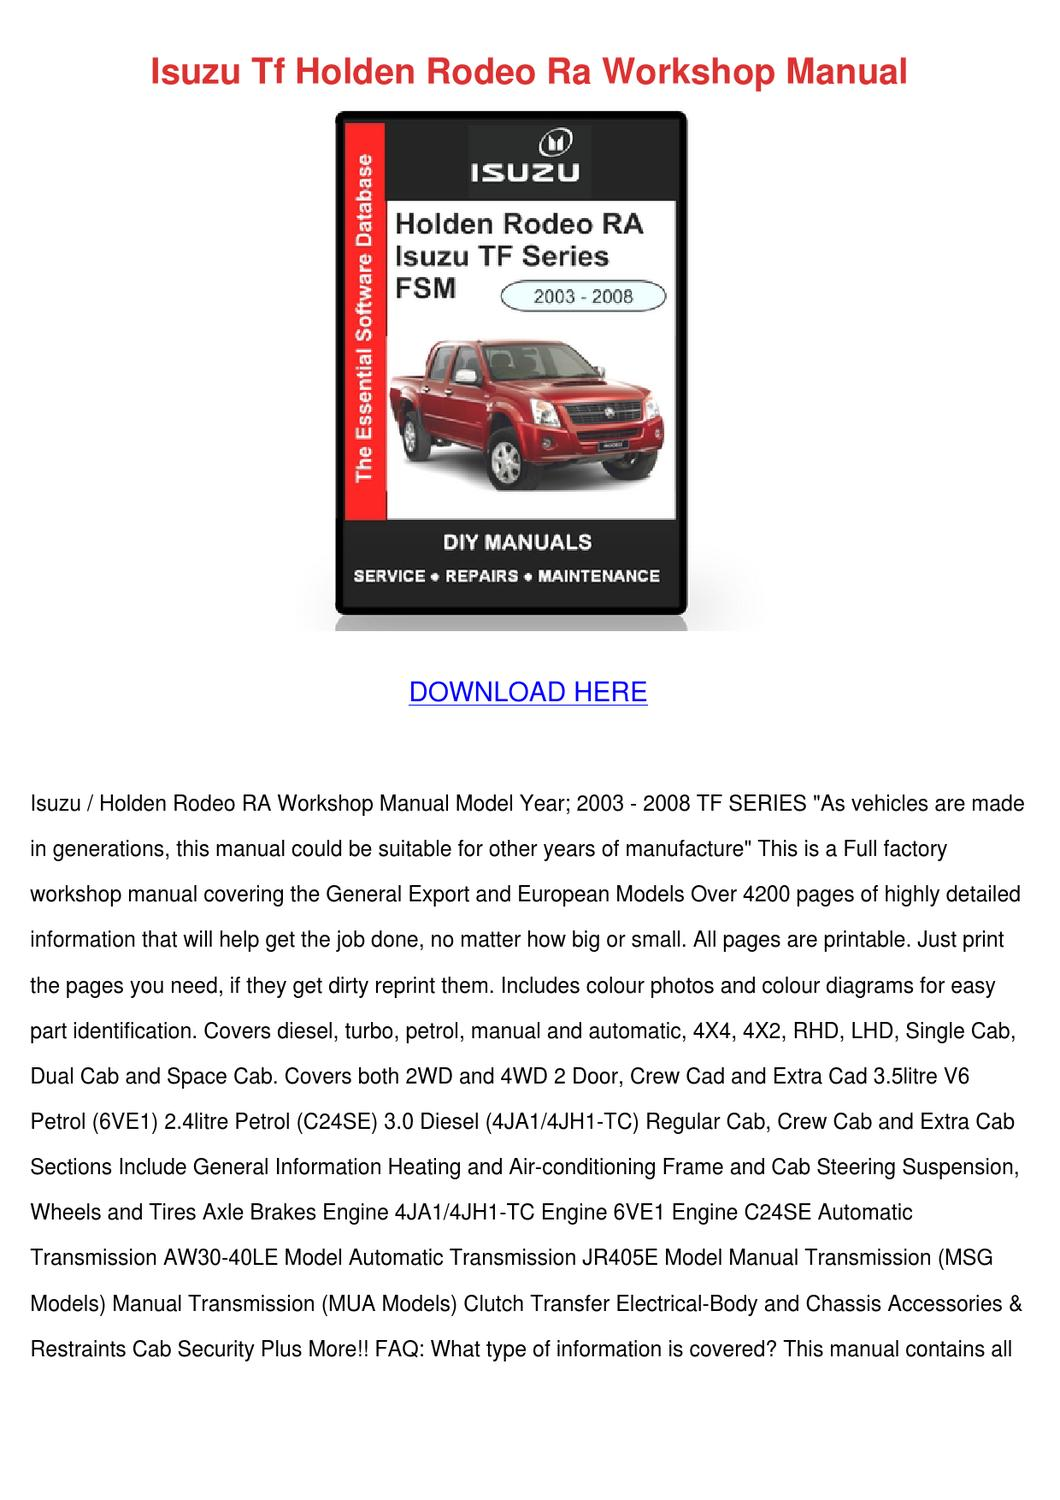 Isuzu Tf Holden Rodeo Ra Workshop Manual by Asia Hafter - issuu